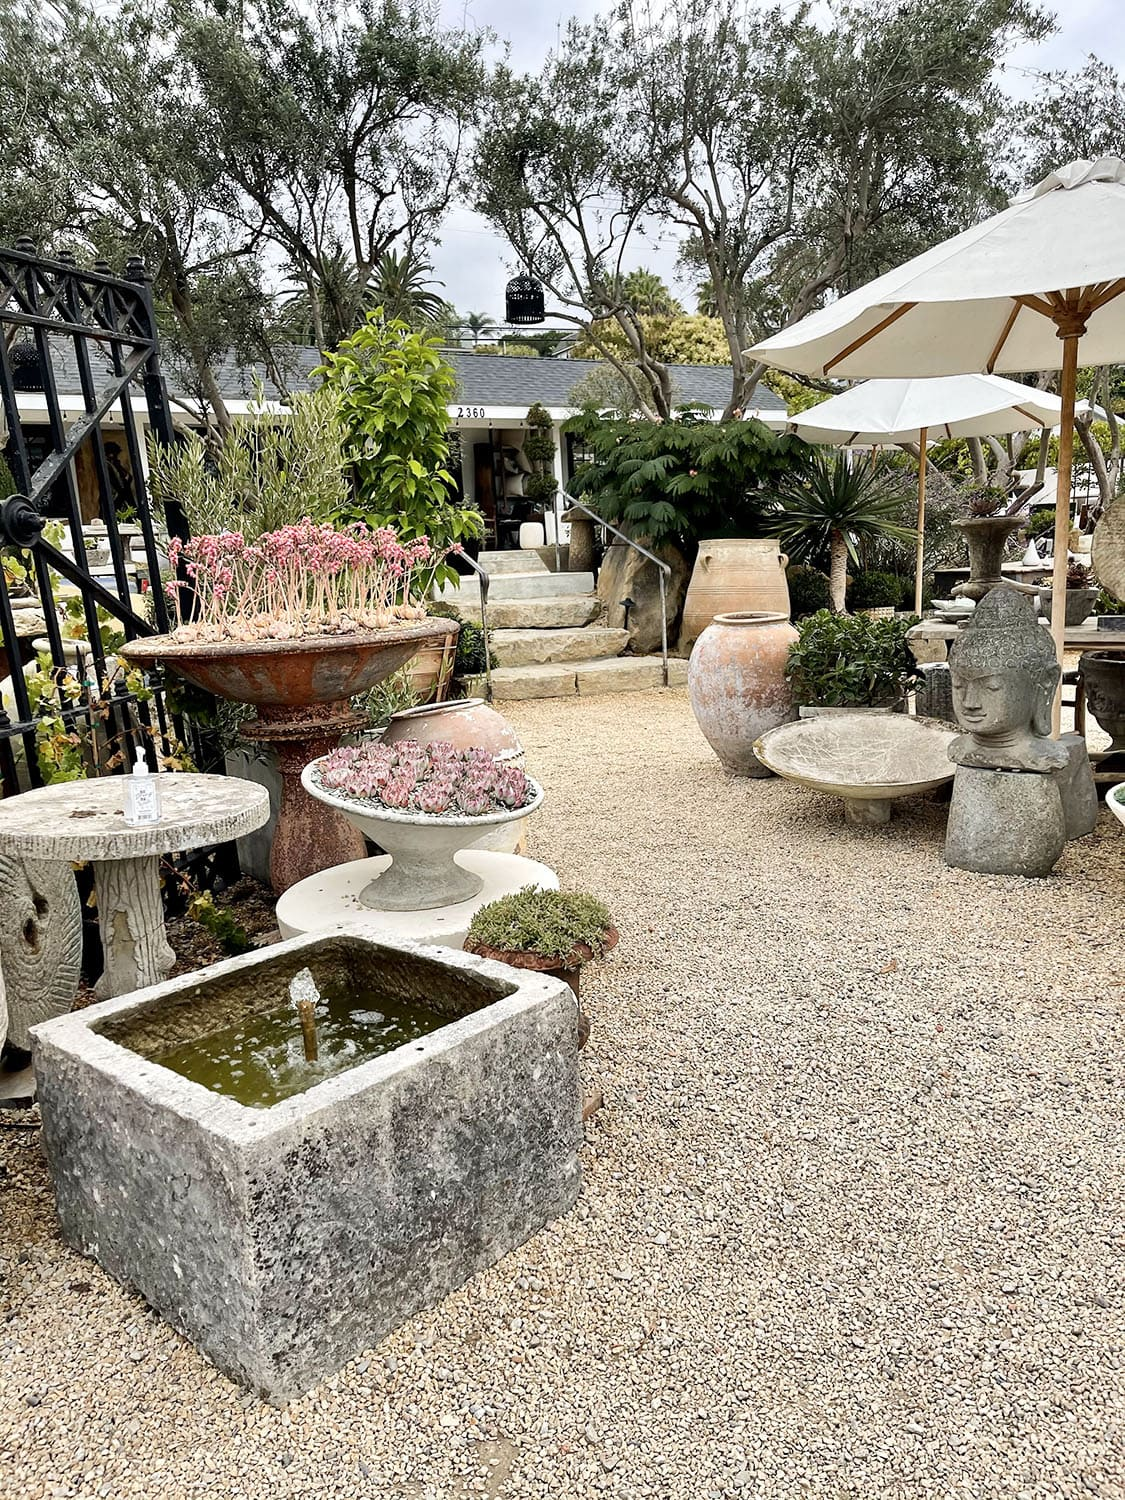 the well patio area